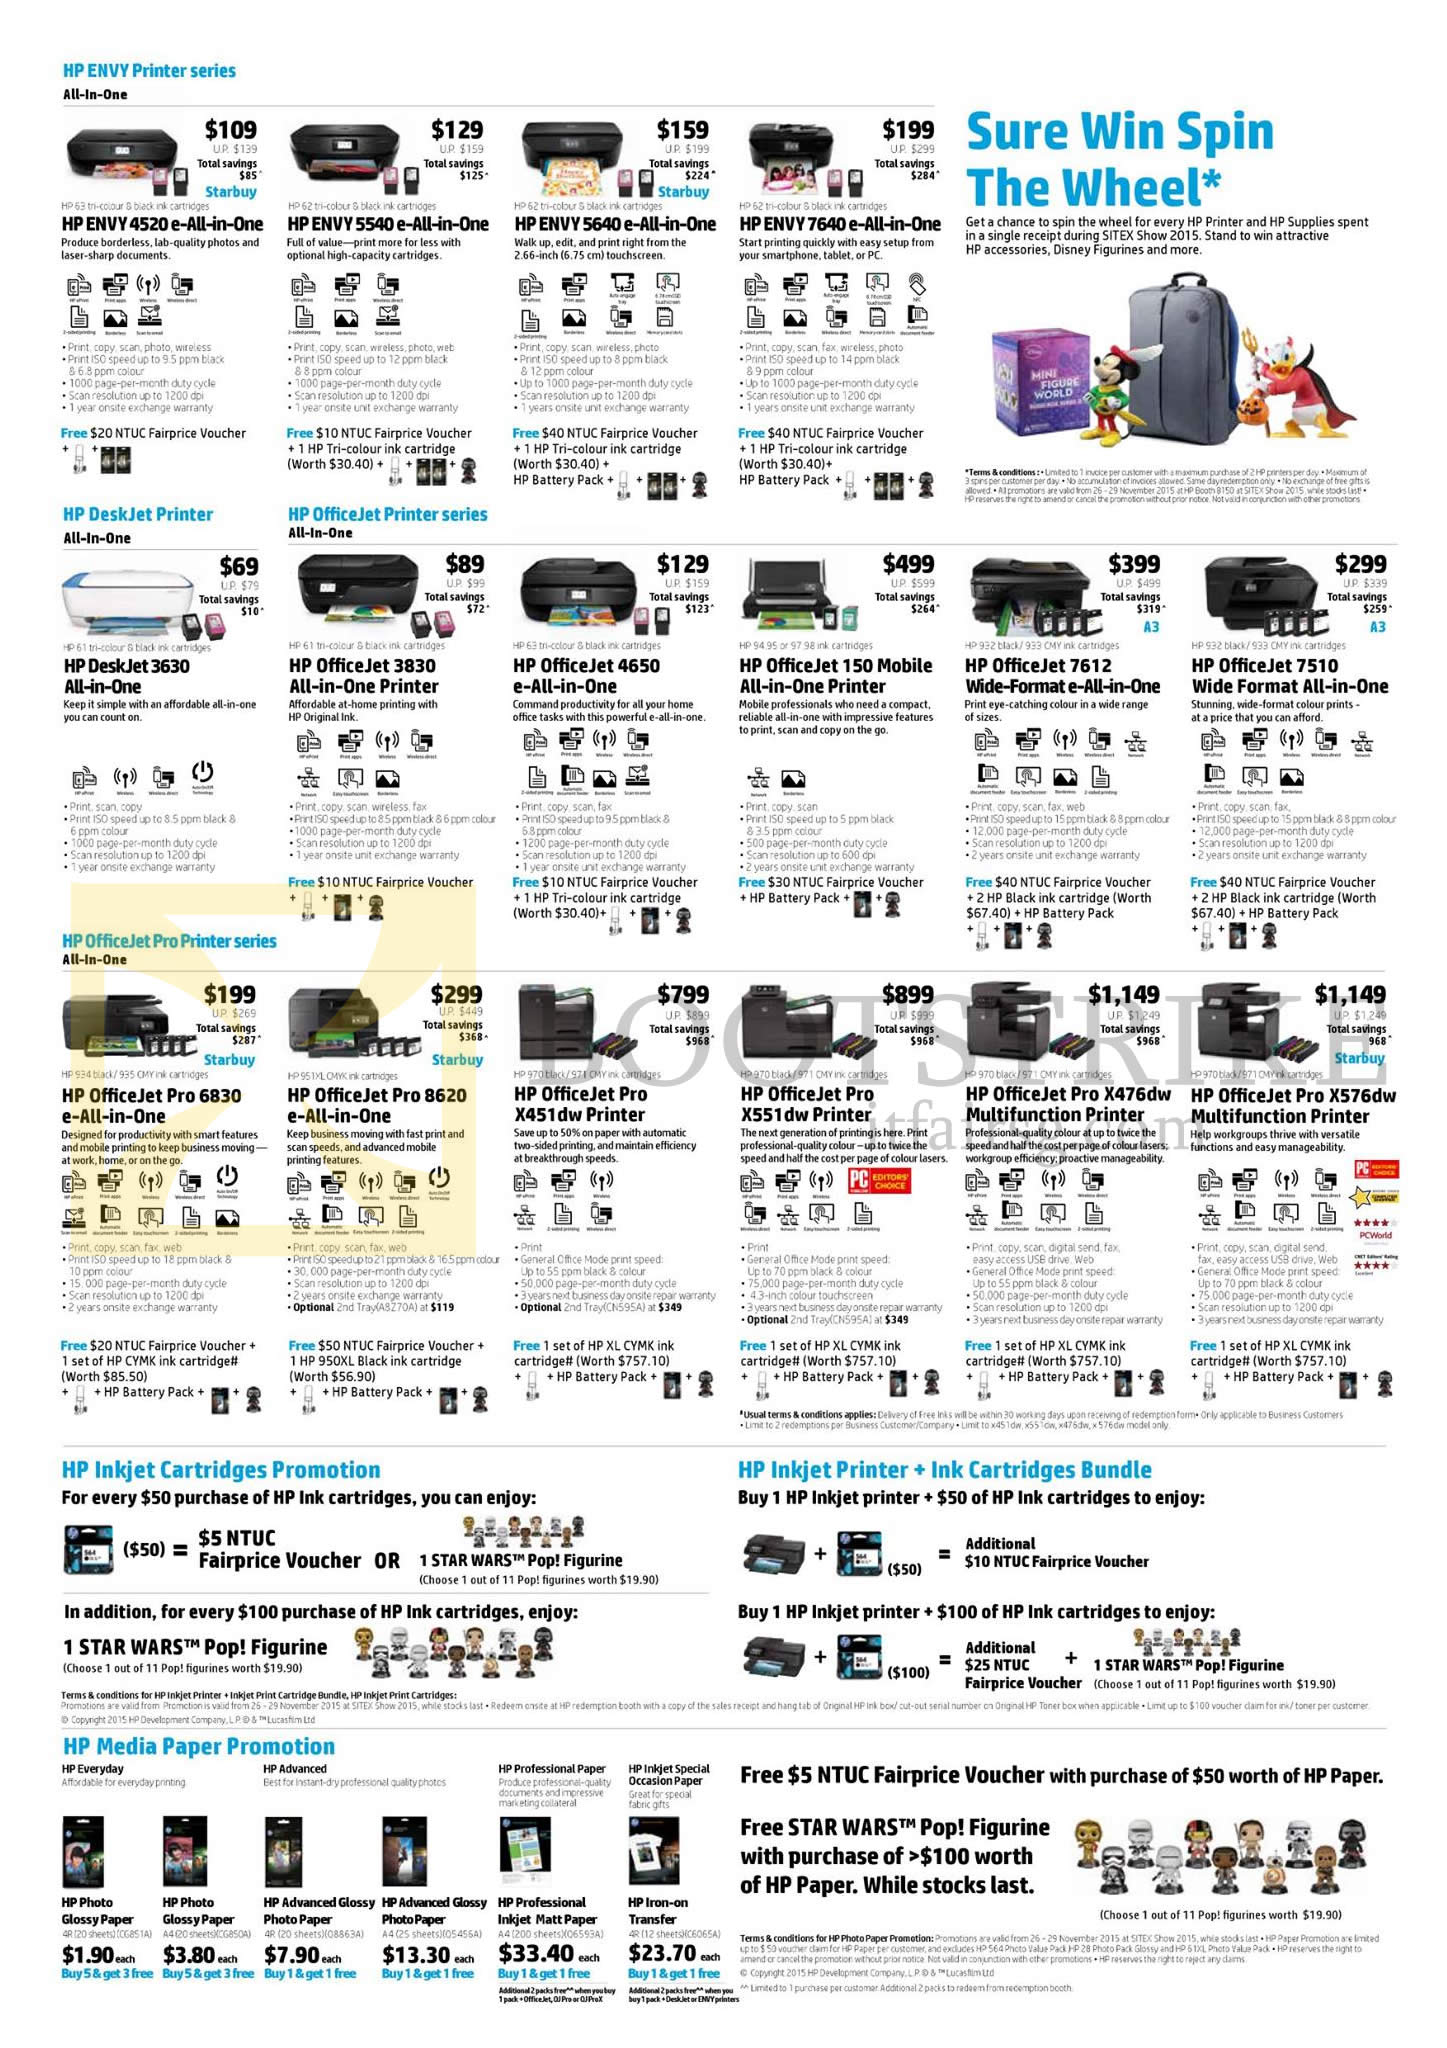 SITEX 2015 price list image brochure of HP Printers, Inkjet Cartridges, Media Paper, Envy 4520, 5540, 5640, 7640, Officejet 3830, 4650, 150 Mobile, 7612, 7510, Pro6830, Pro8620, ProX451dw, ProX551dw